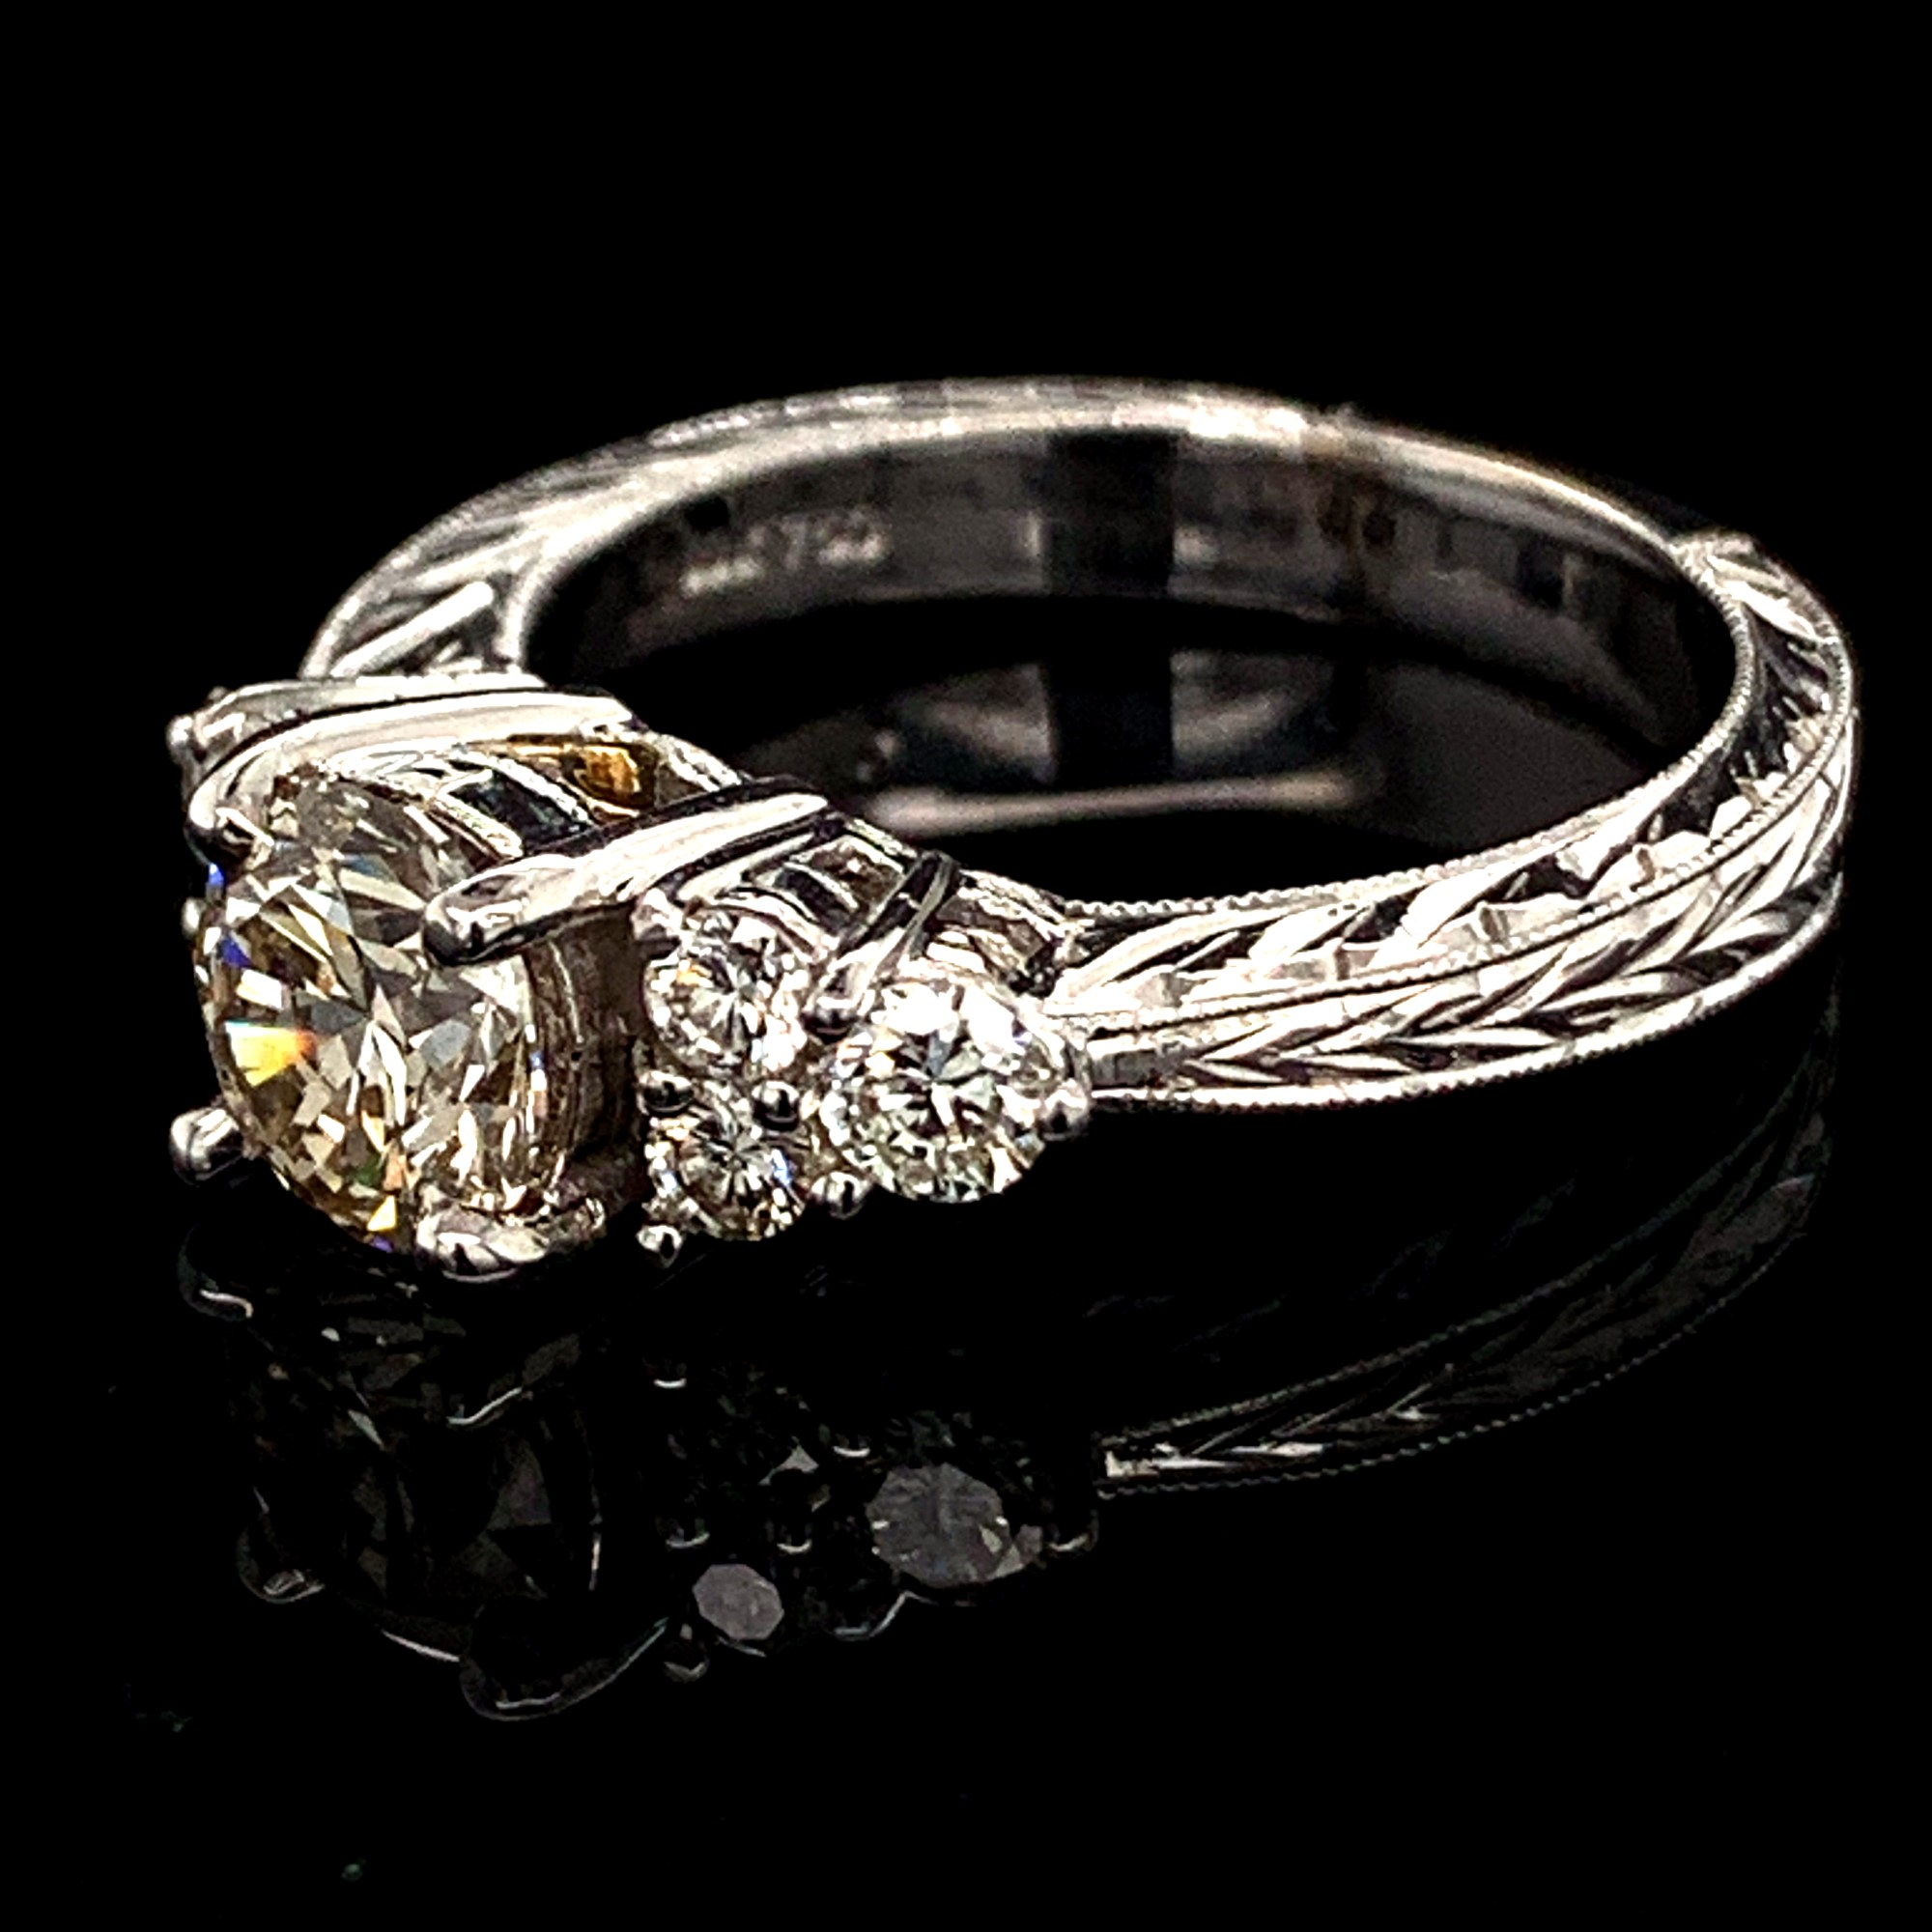 Diamond Engagement Rings - Ladies Carved 18K White/Yellow Gold And Diamond Engagement Ring - image #2